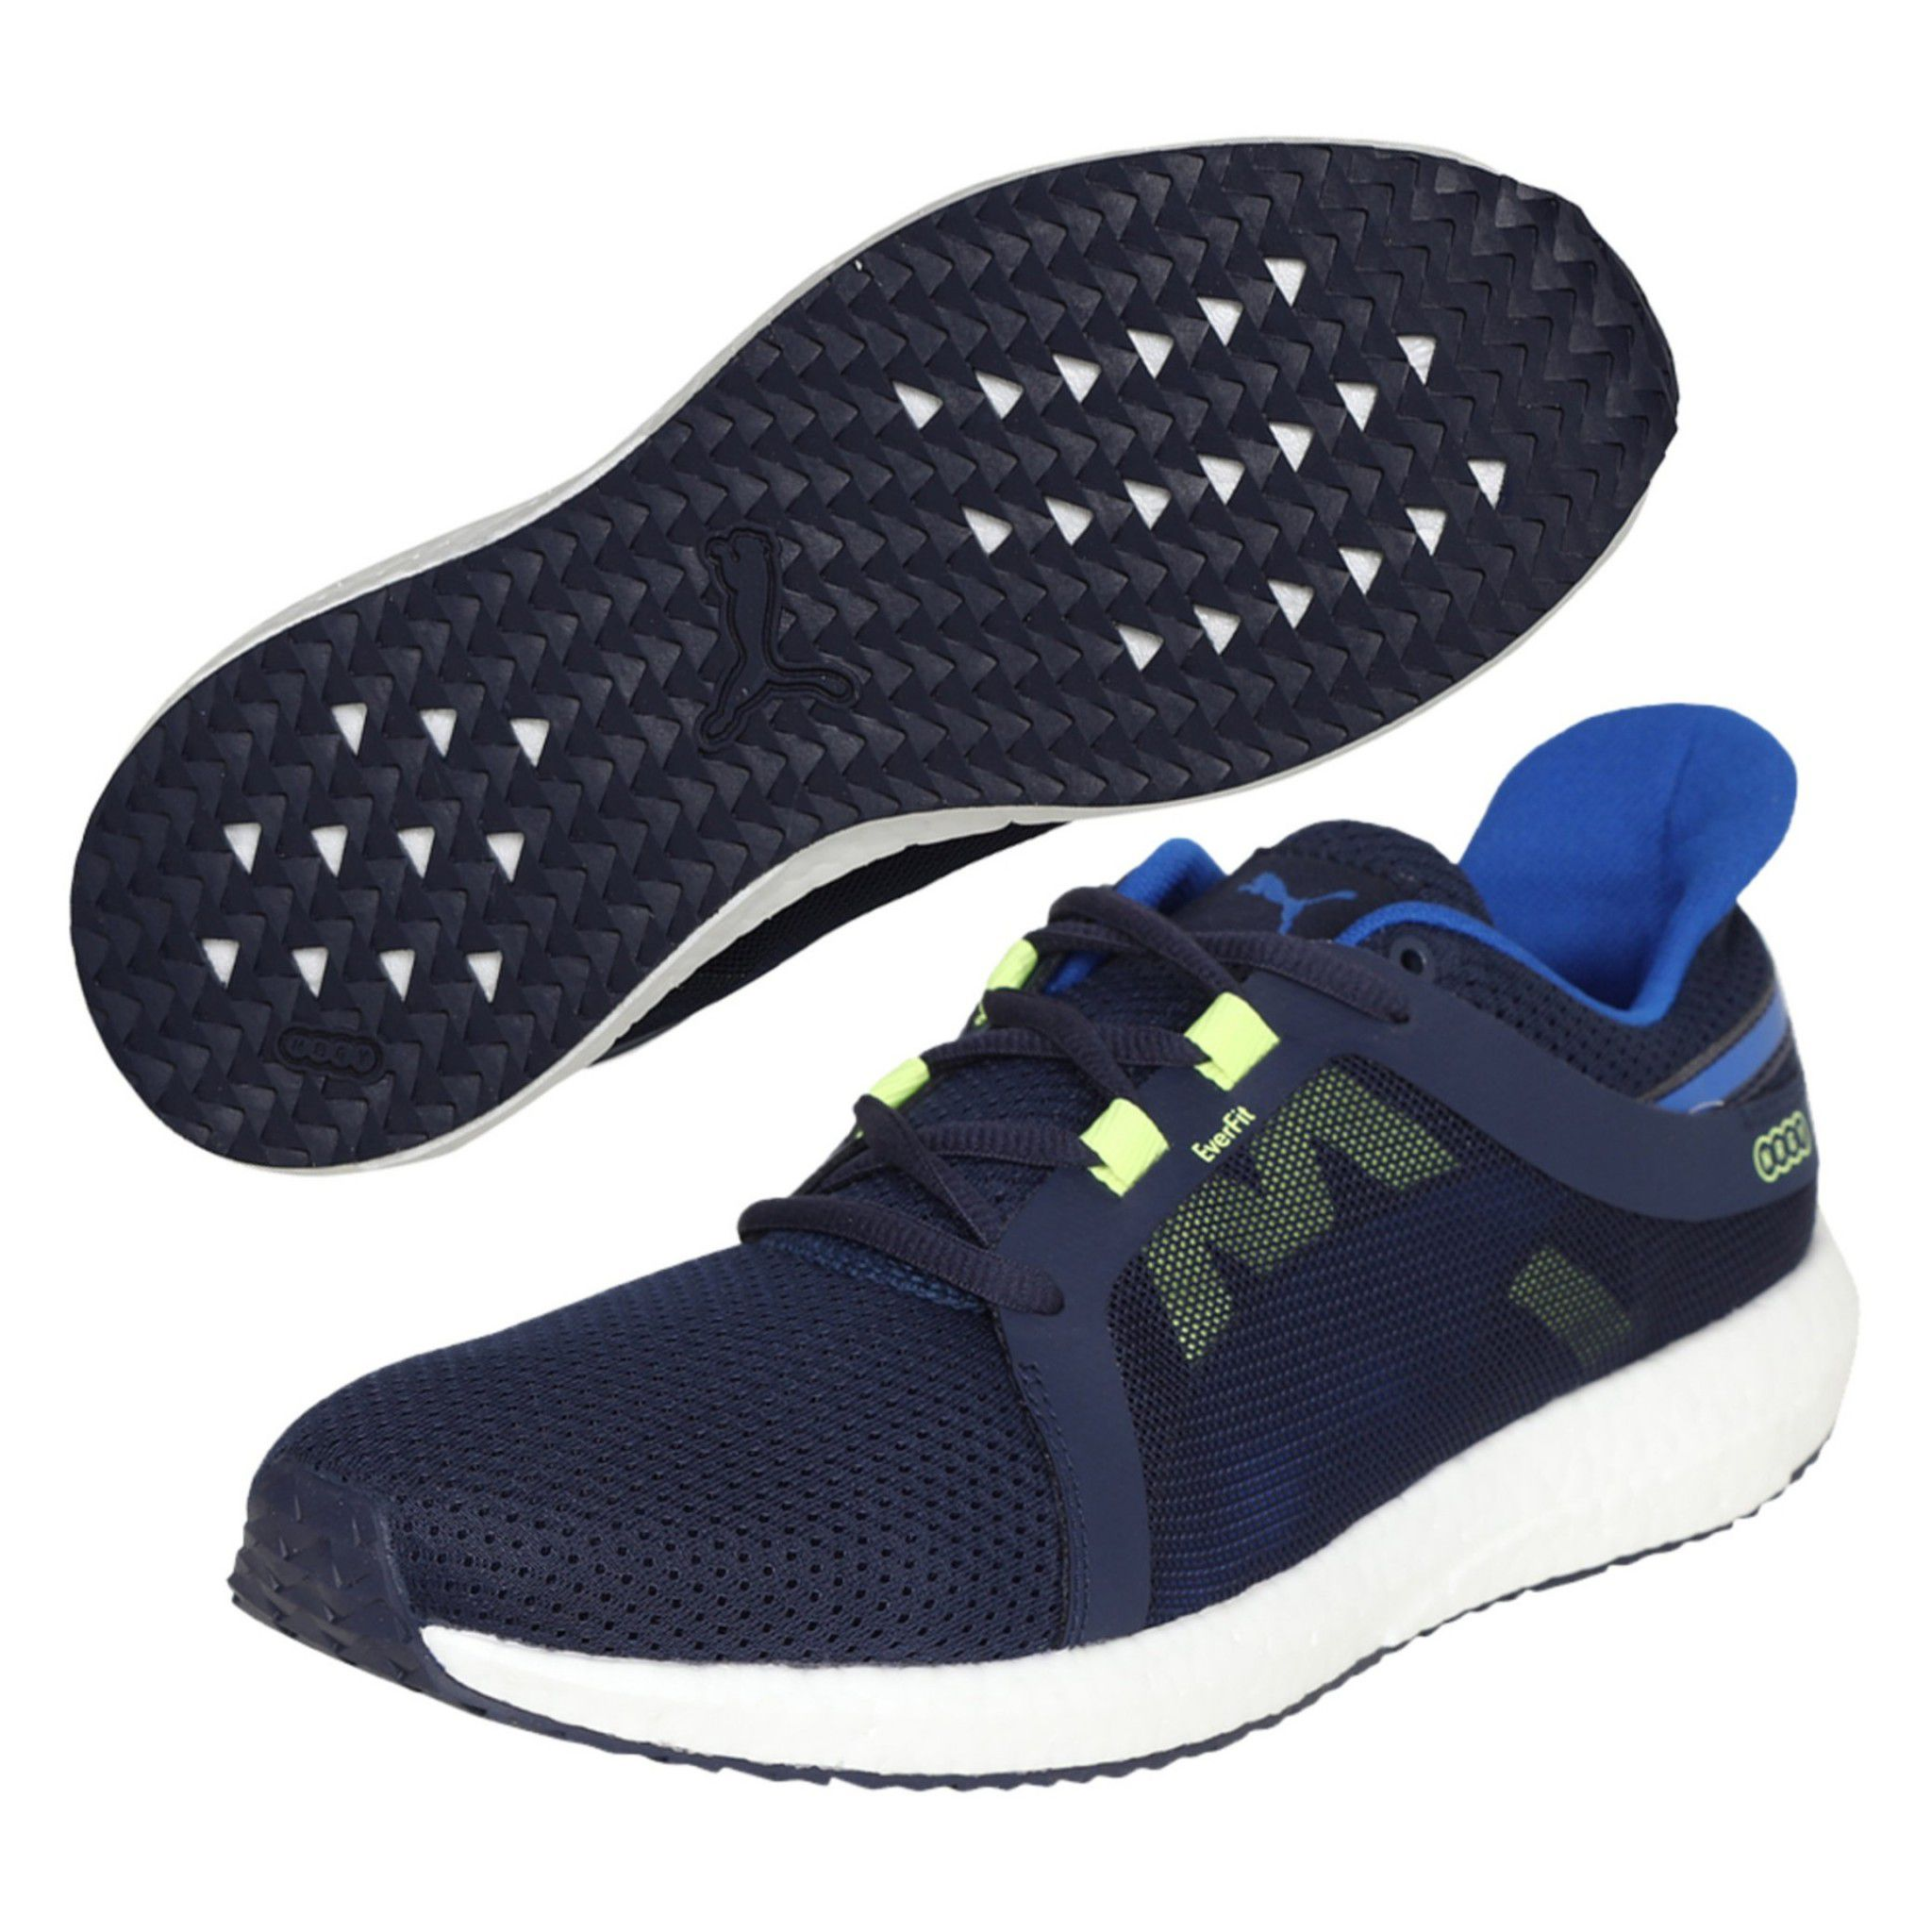 3b540471e736 Puma Mega NRGY Turbo 2 Blue Running Shoes - Buy Puma Mega NRGY Turbo 2 Blue Running  Shoes Online at Best Prices in India on Snapdeal